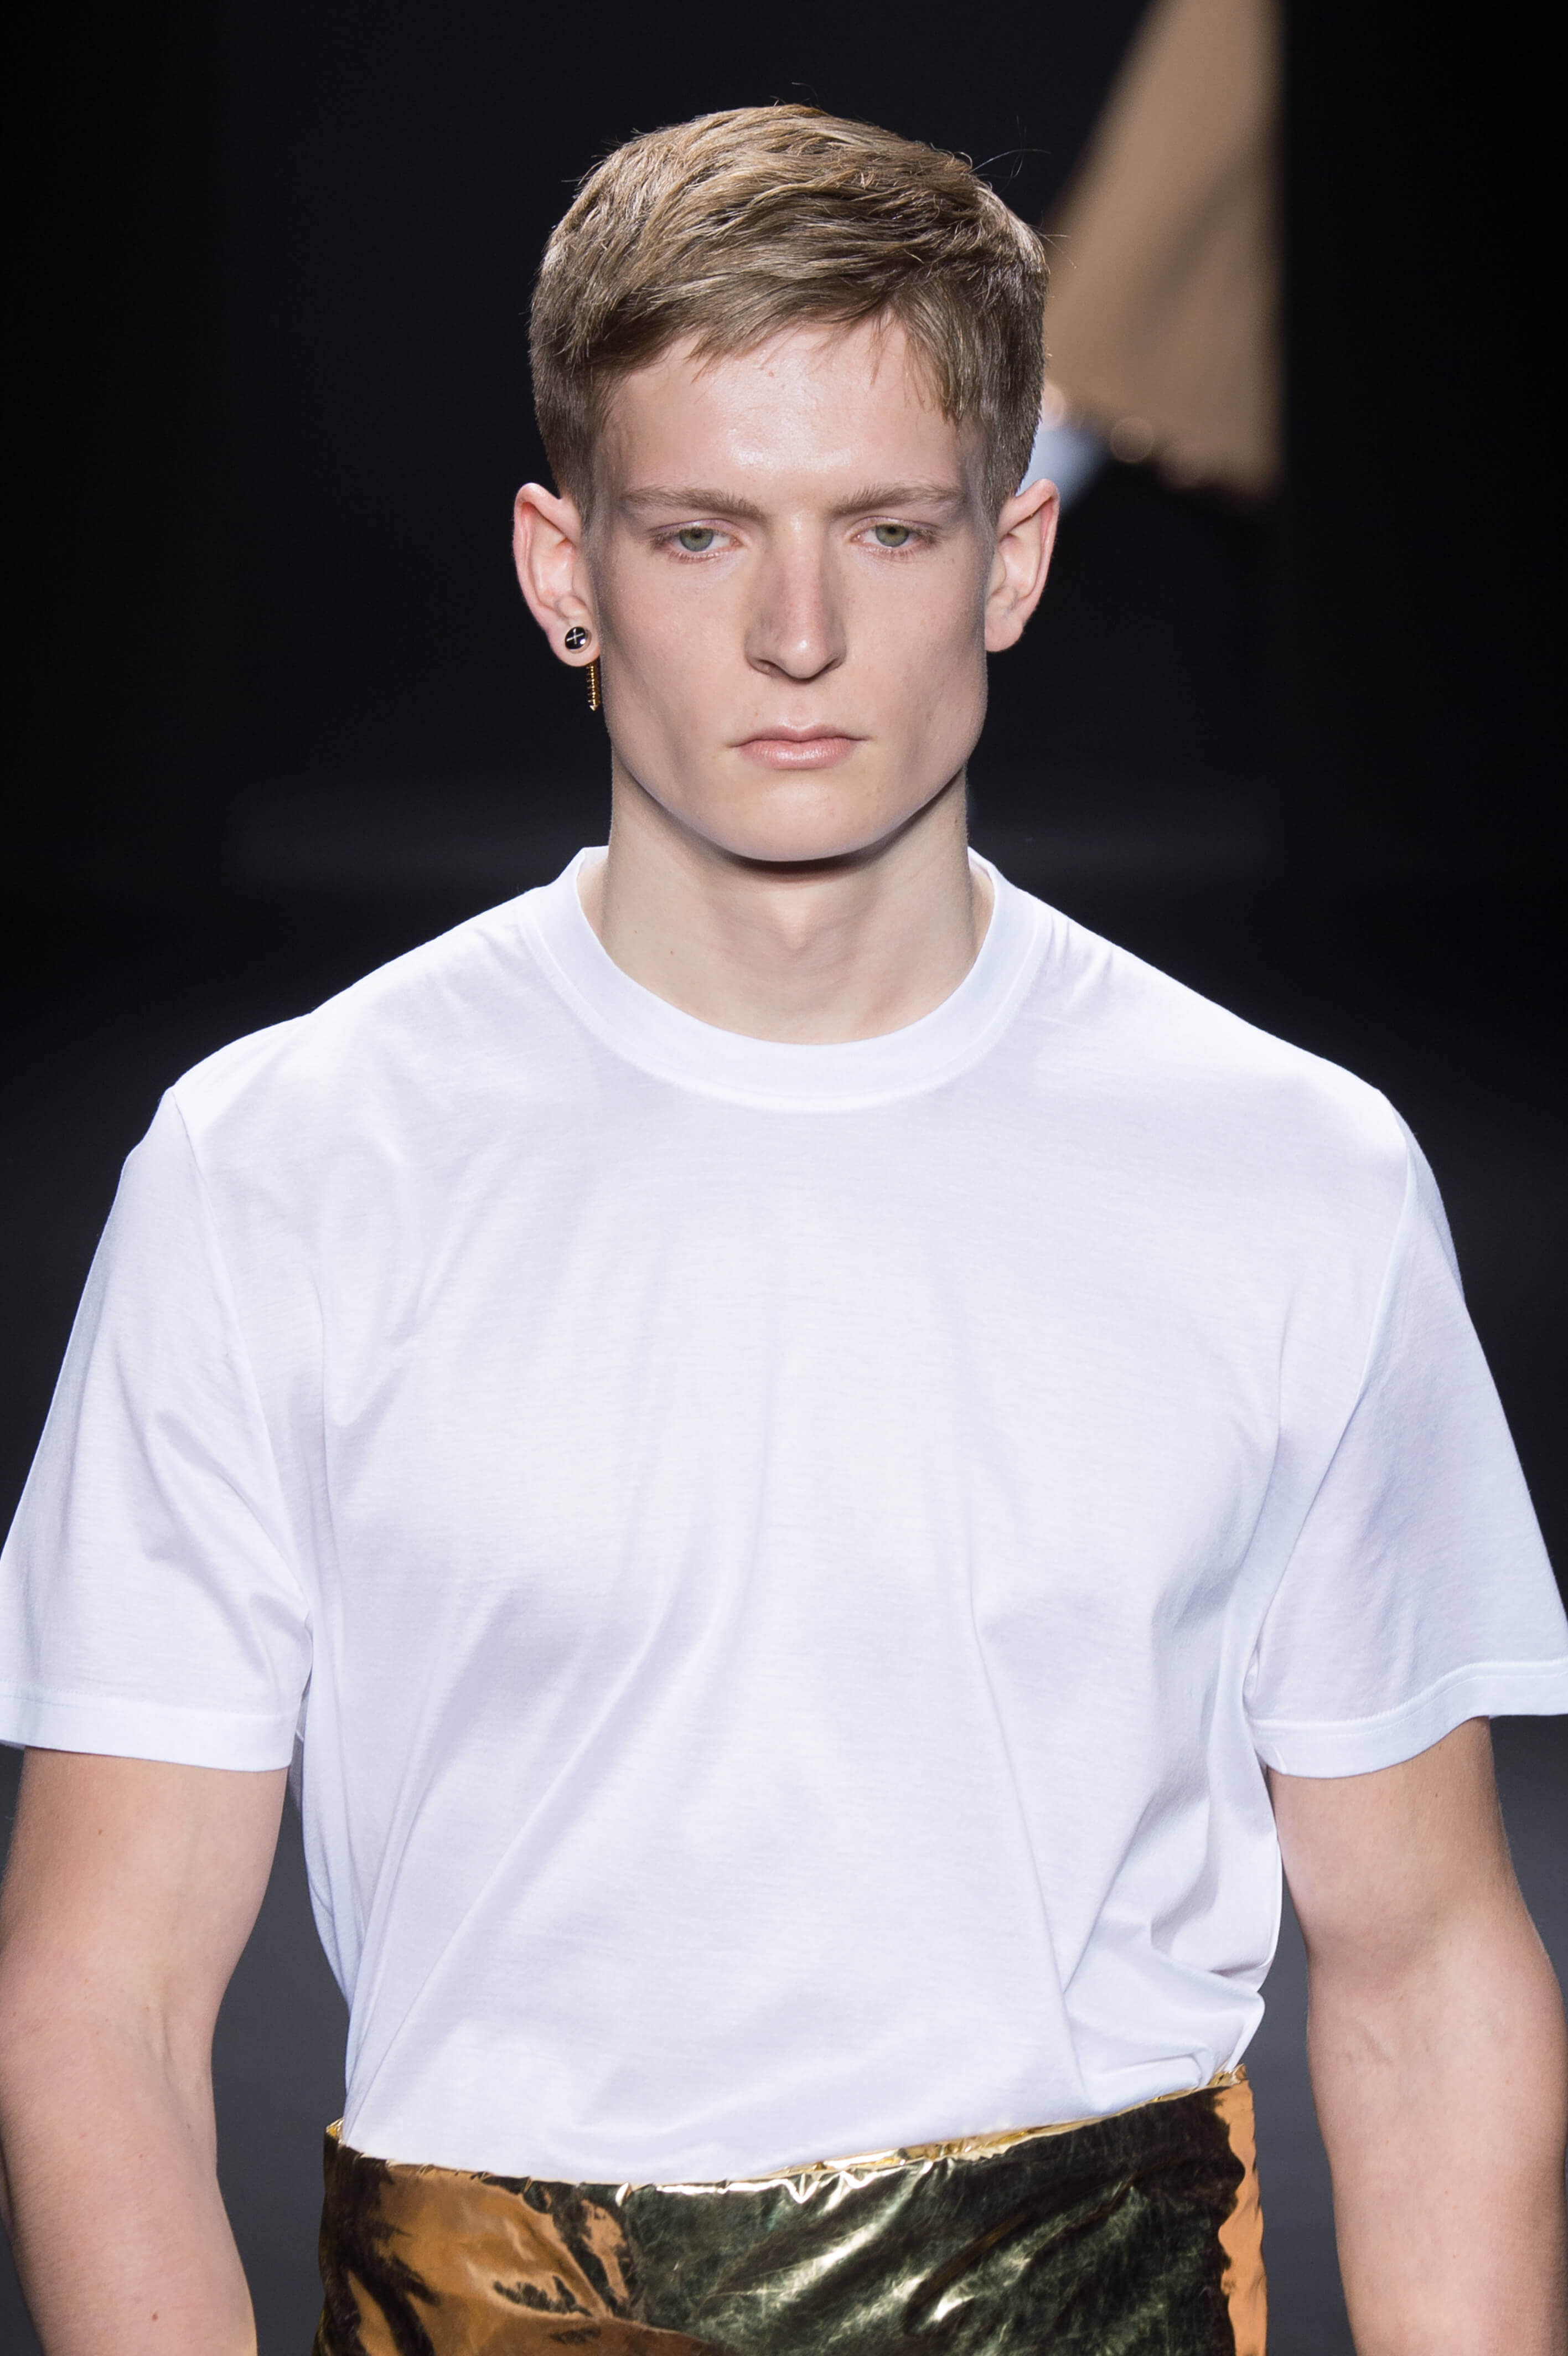 Hairstyles for balding men the short classic crop